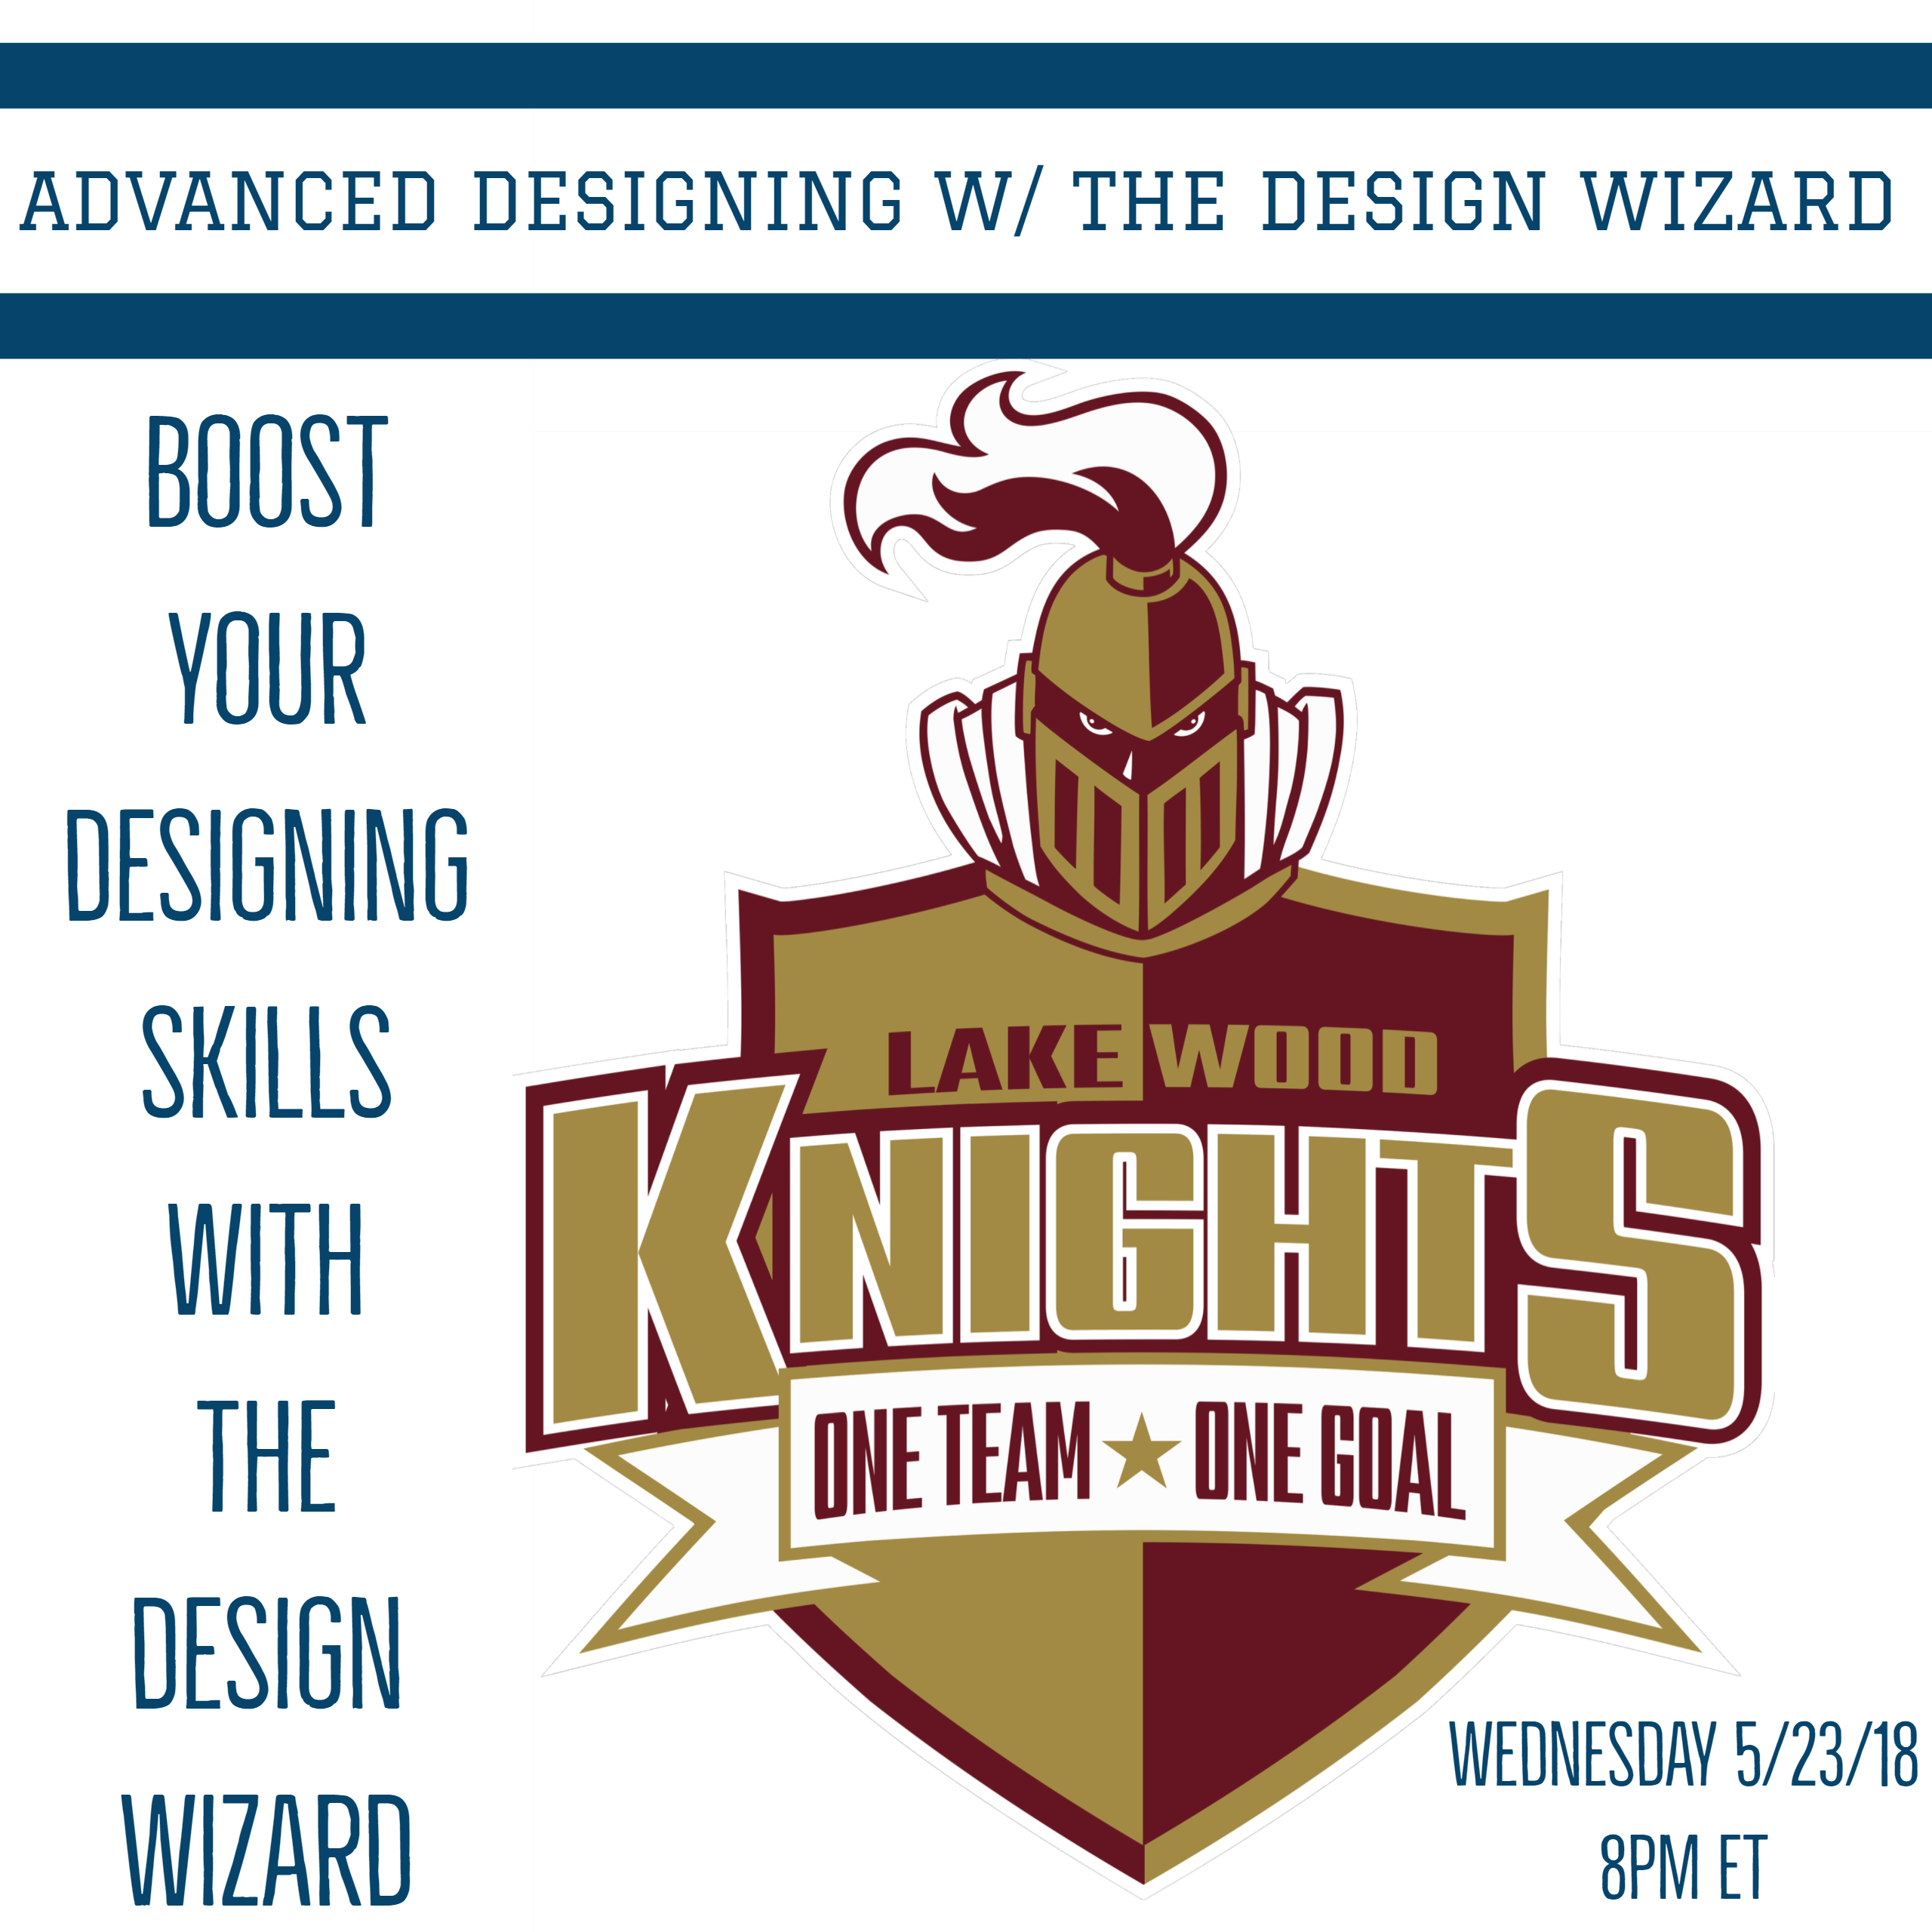 05/23/2018 Advanced Designing with the Design Wizard